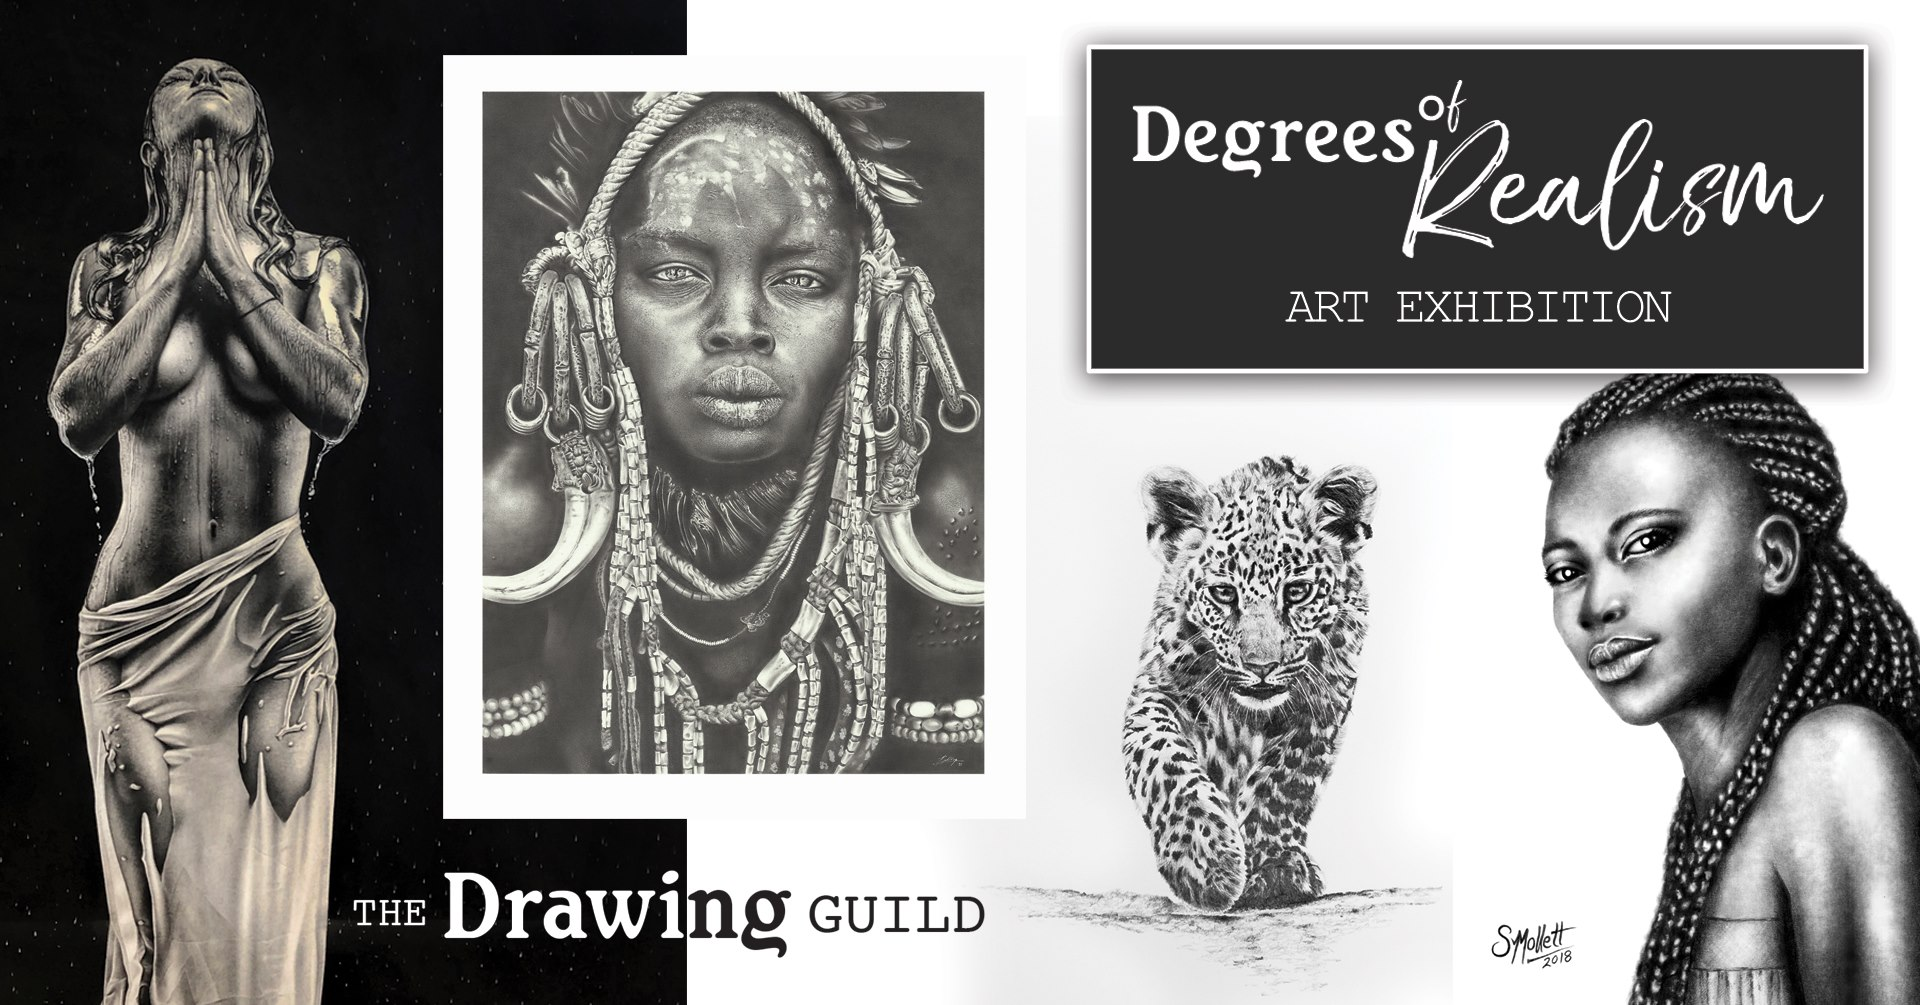 Degrees of Realism Art Exhibition @ Weylandts (22 – 24 Oct)